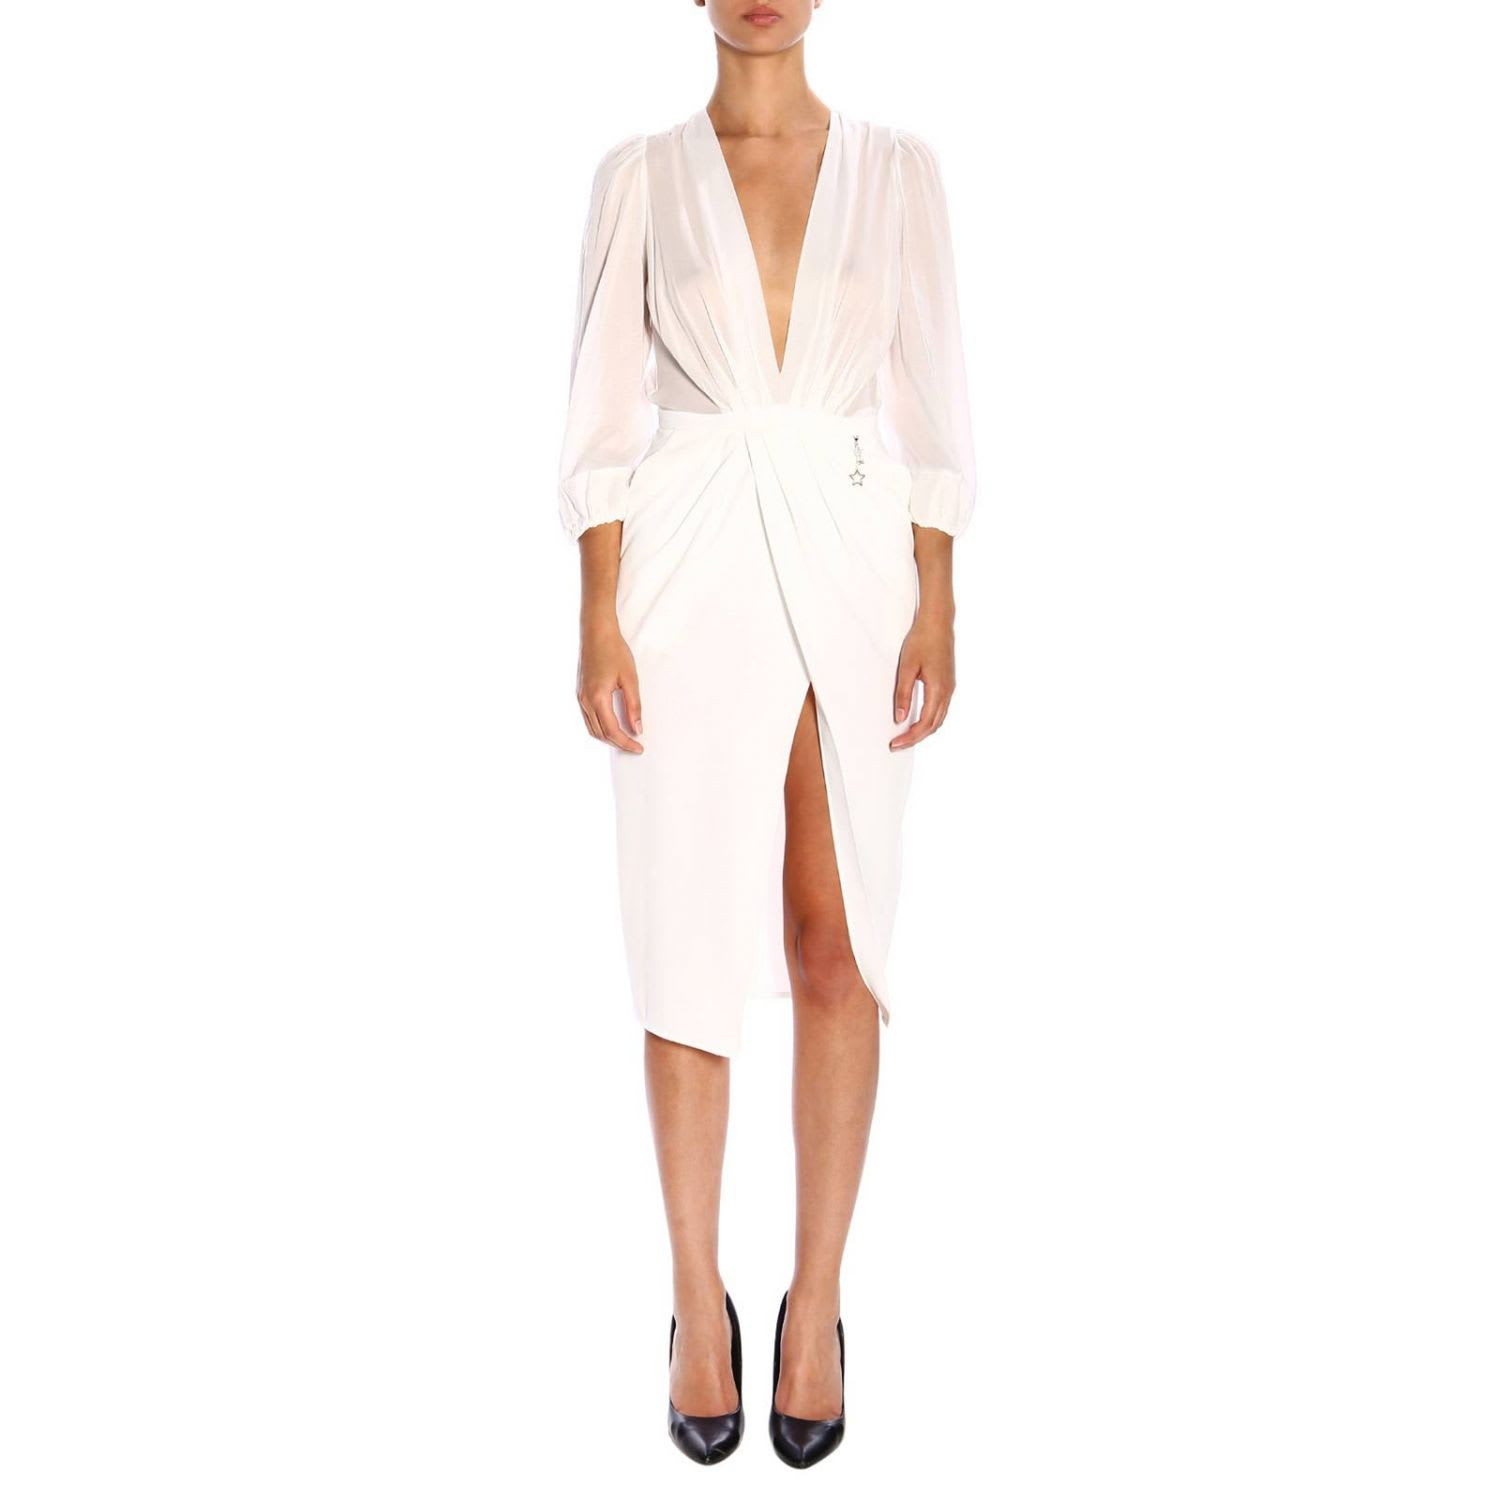 Elisabetta Franchi Dress Elisabetta Franchi Dress With Tear